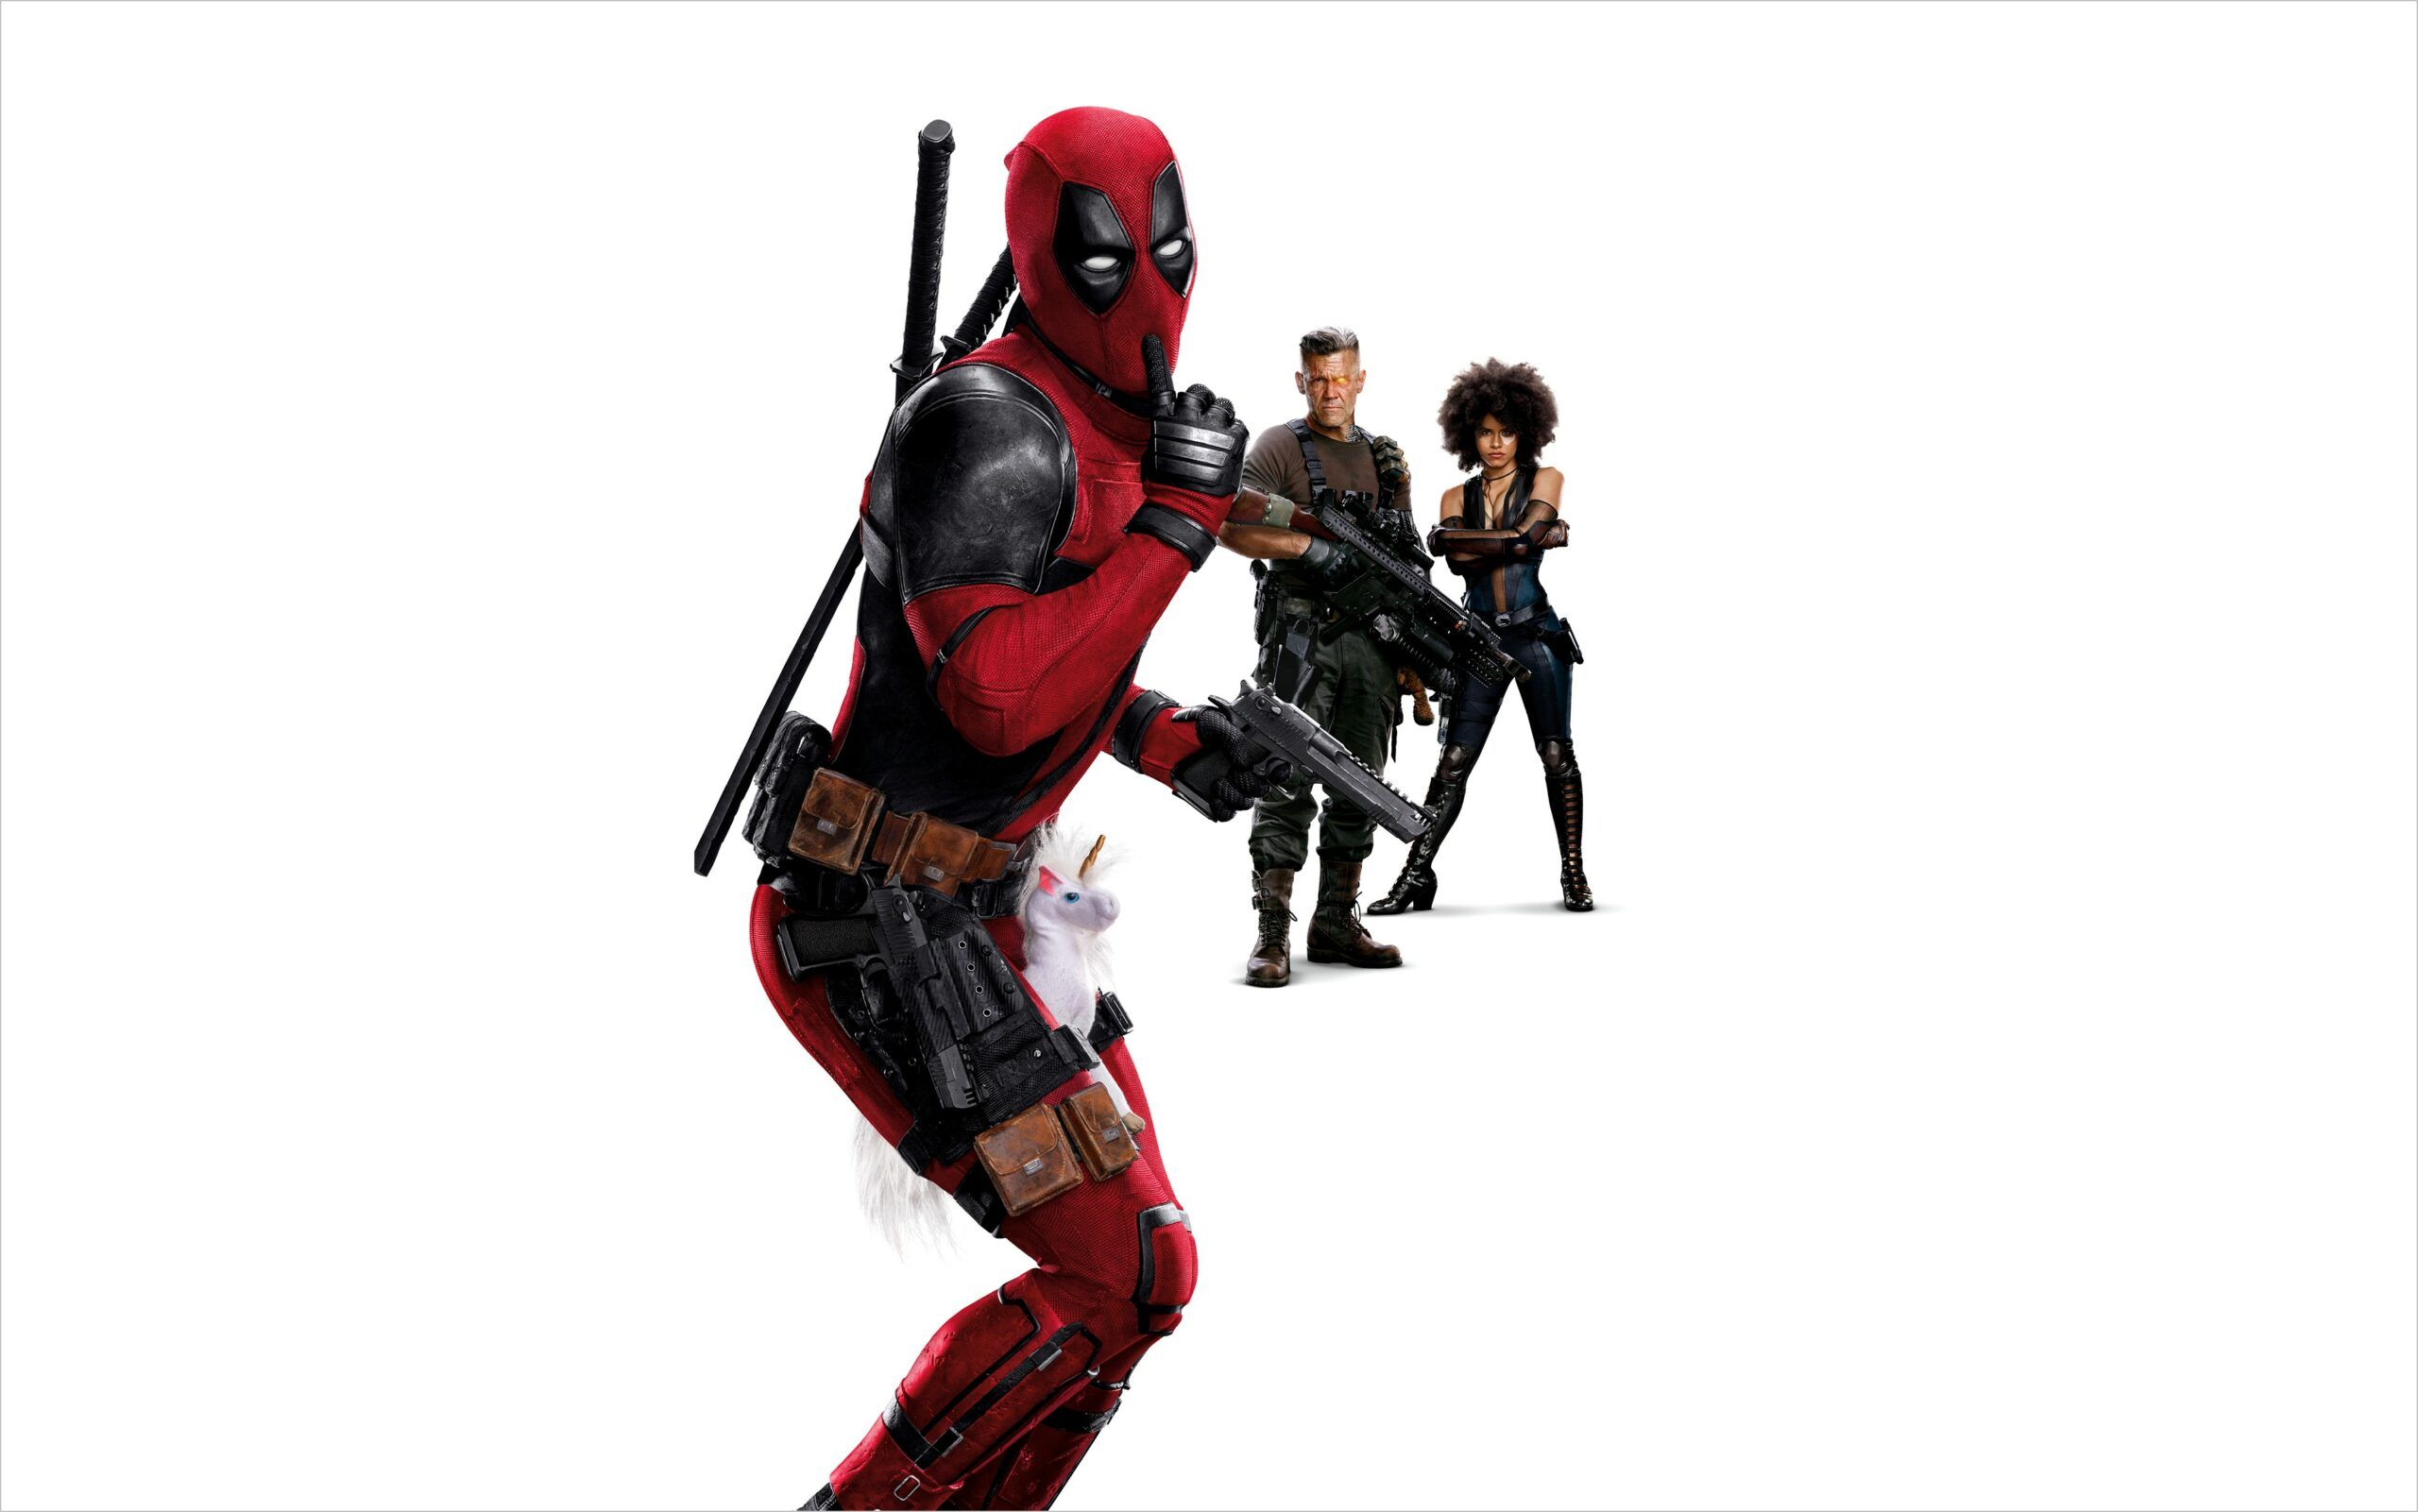 Deadpool Funny Wallpaper 4k In 2020 Funny Poses Movie Wallpapers Deadpool Wallpaper